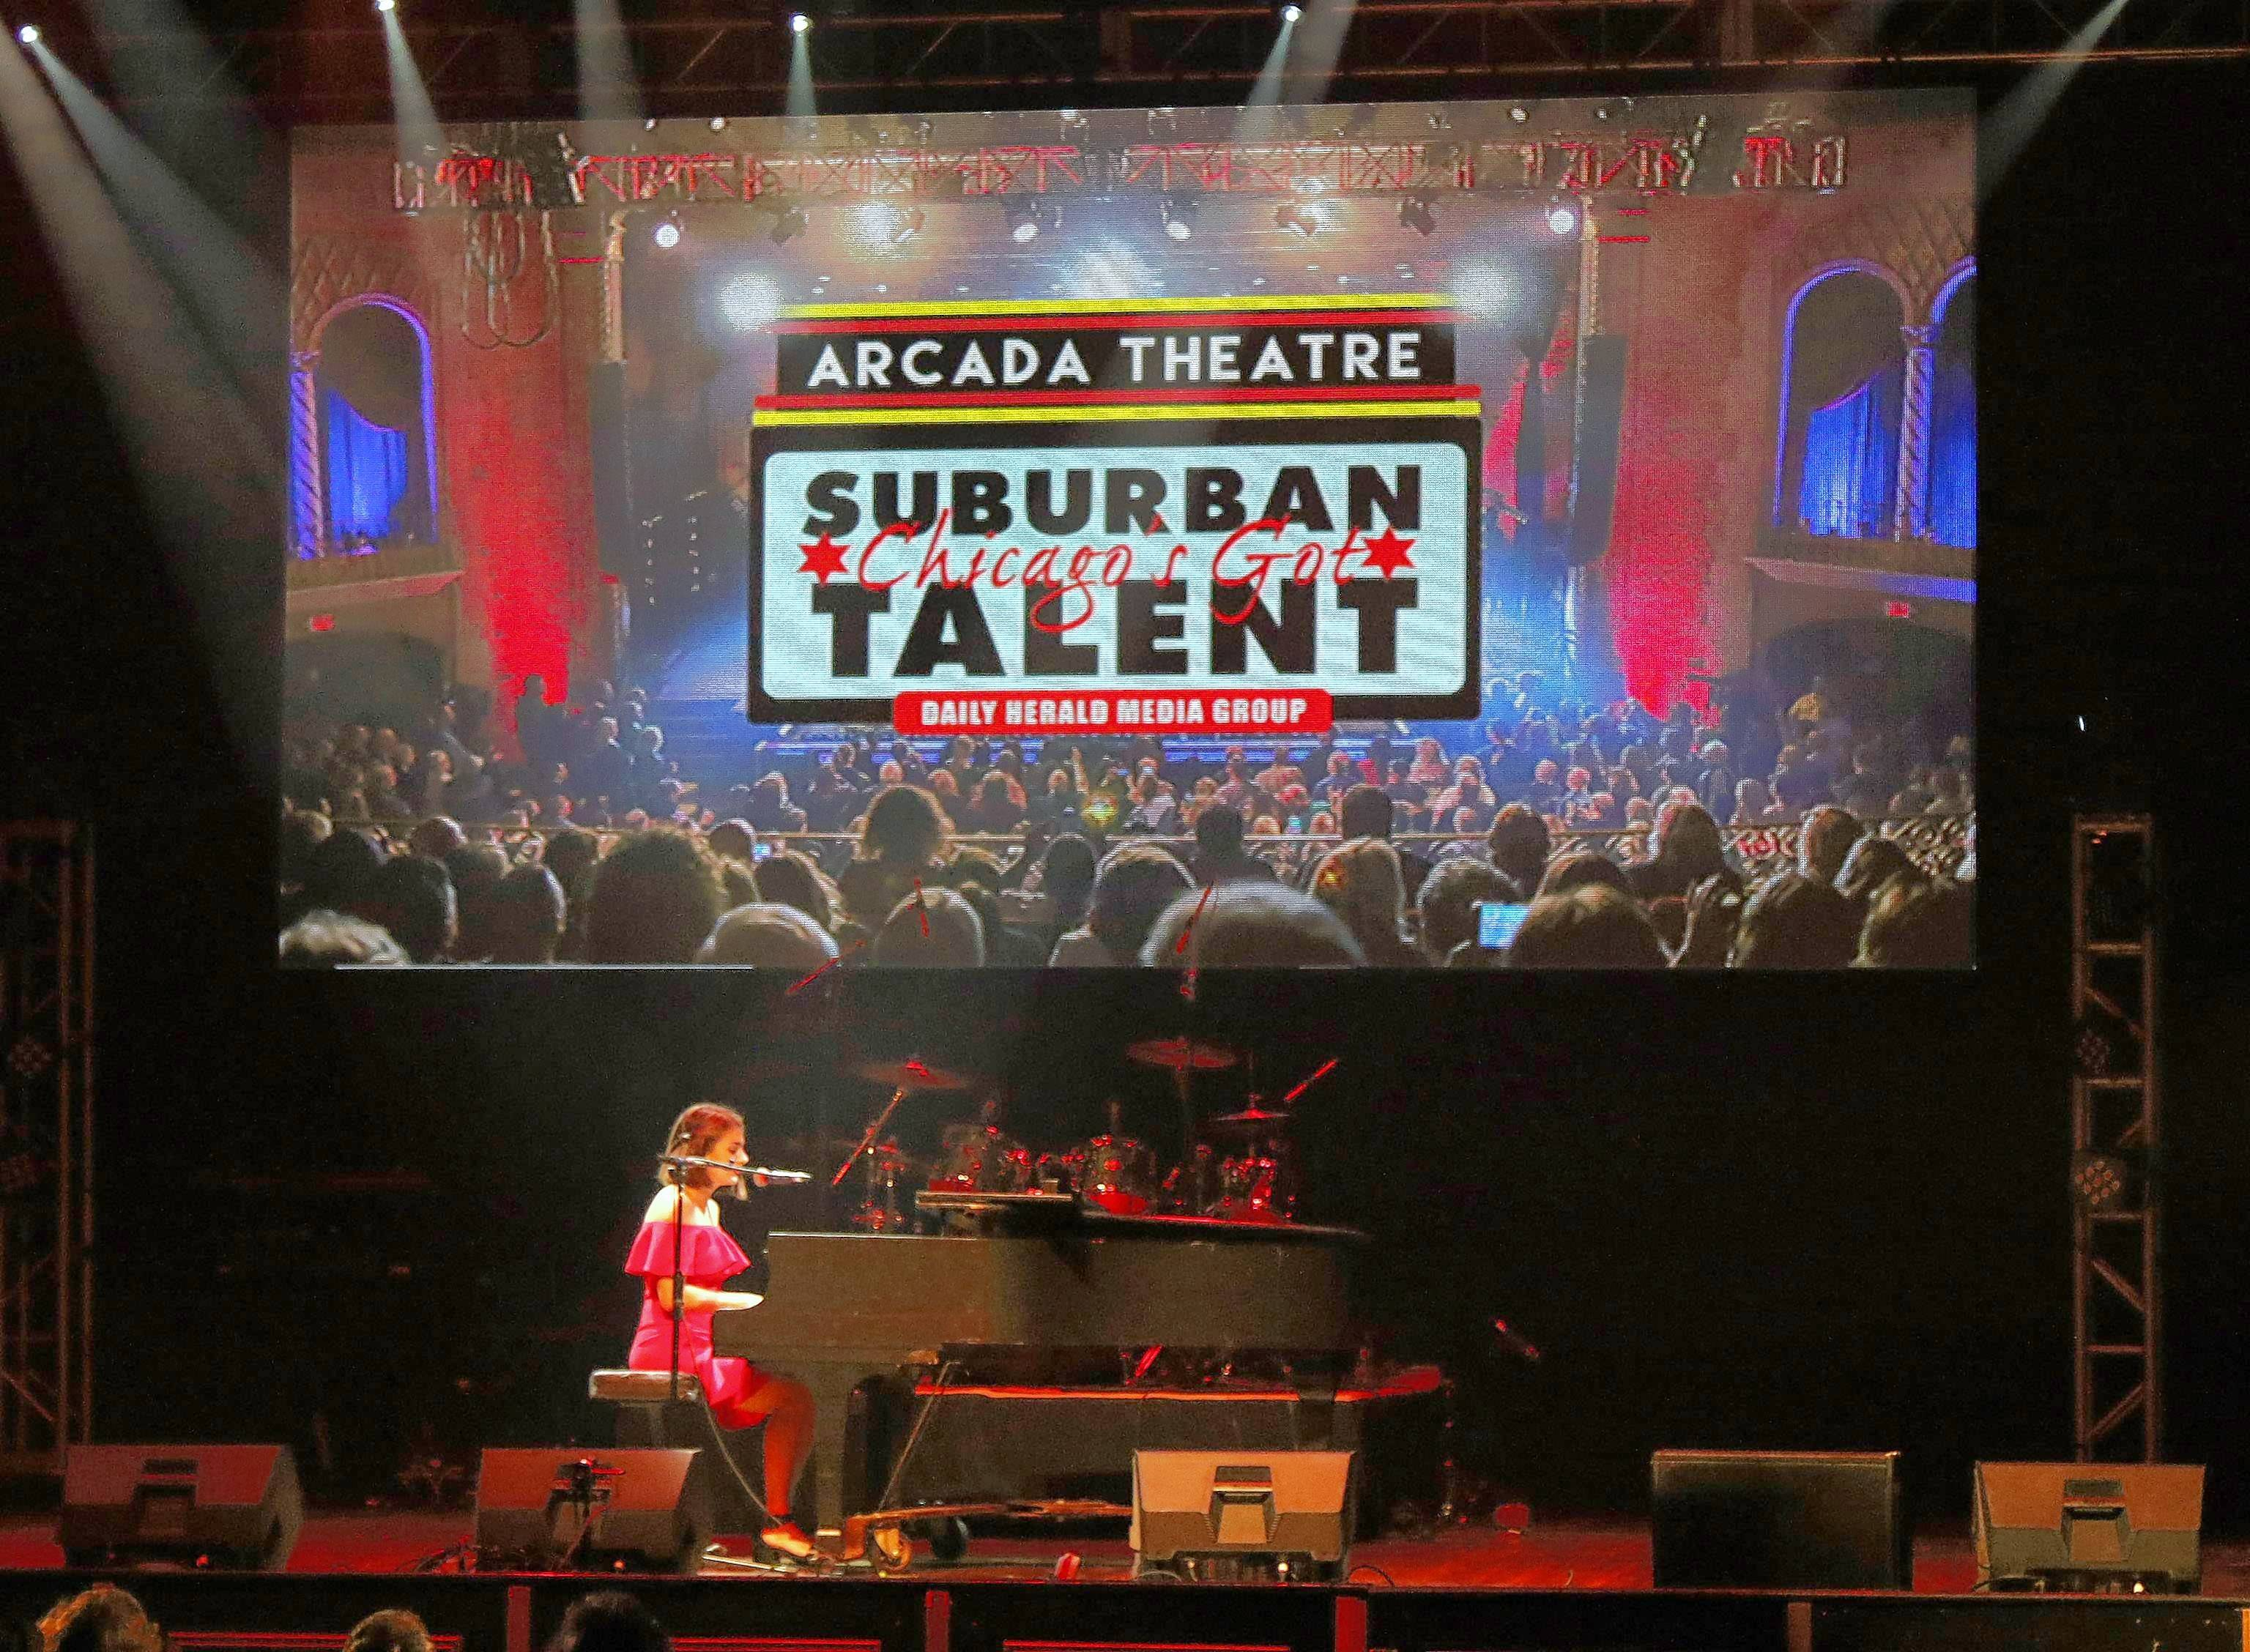 Elmhurst resident Shannon Nugent has signed up to compete again in Suburban Chicago's Got Talent. The singer/songwriter/pianist, formerly of Arlington Heights, was a Top 10 finalist in 2018.